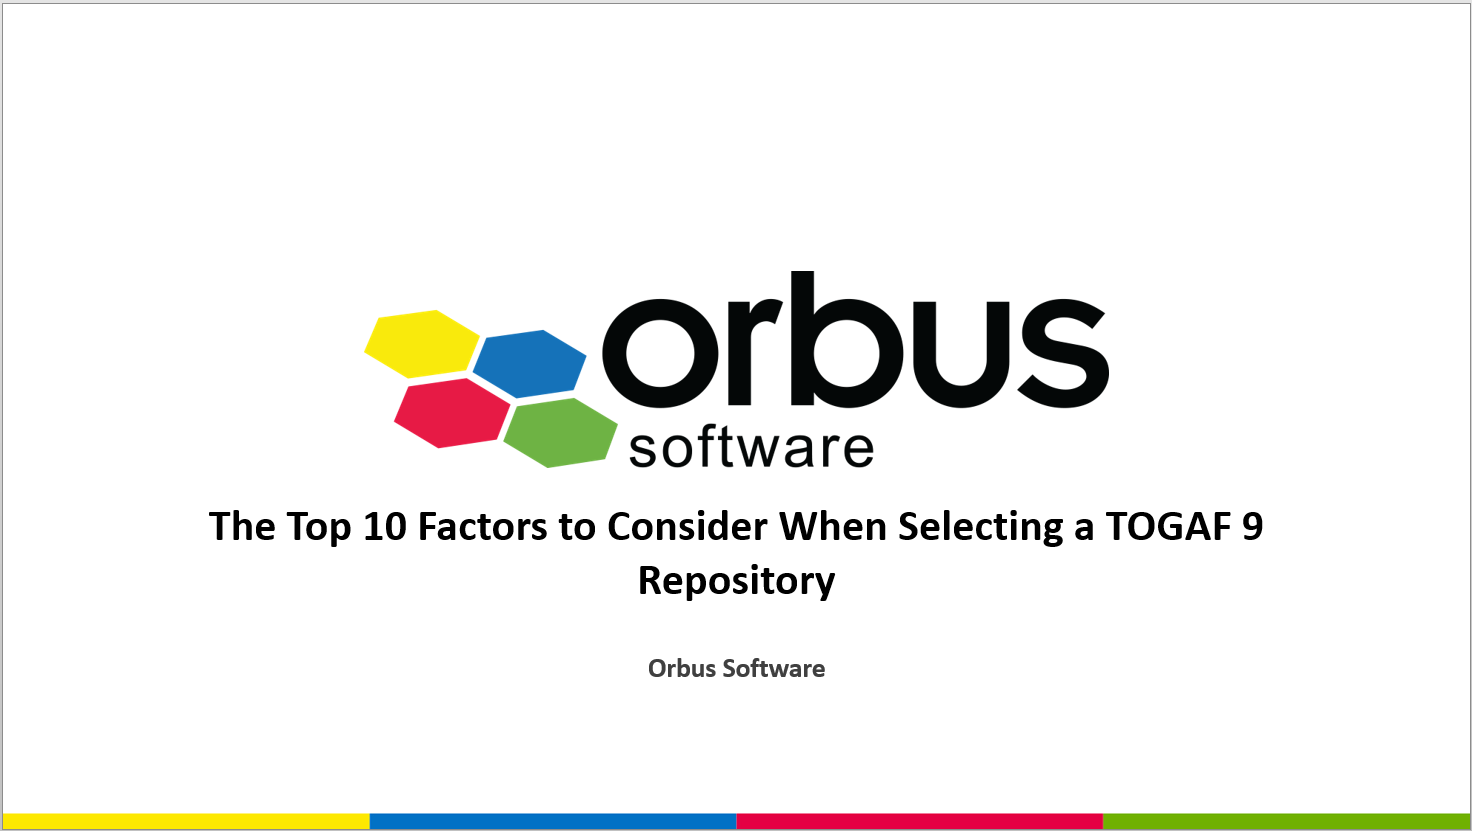 The Top 10 Factors to Consider When Selecting a TOGAF® 9 Repository